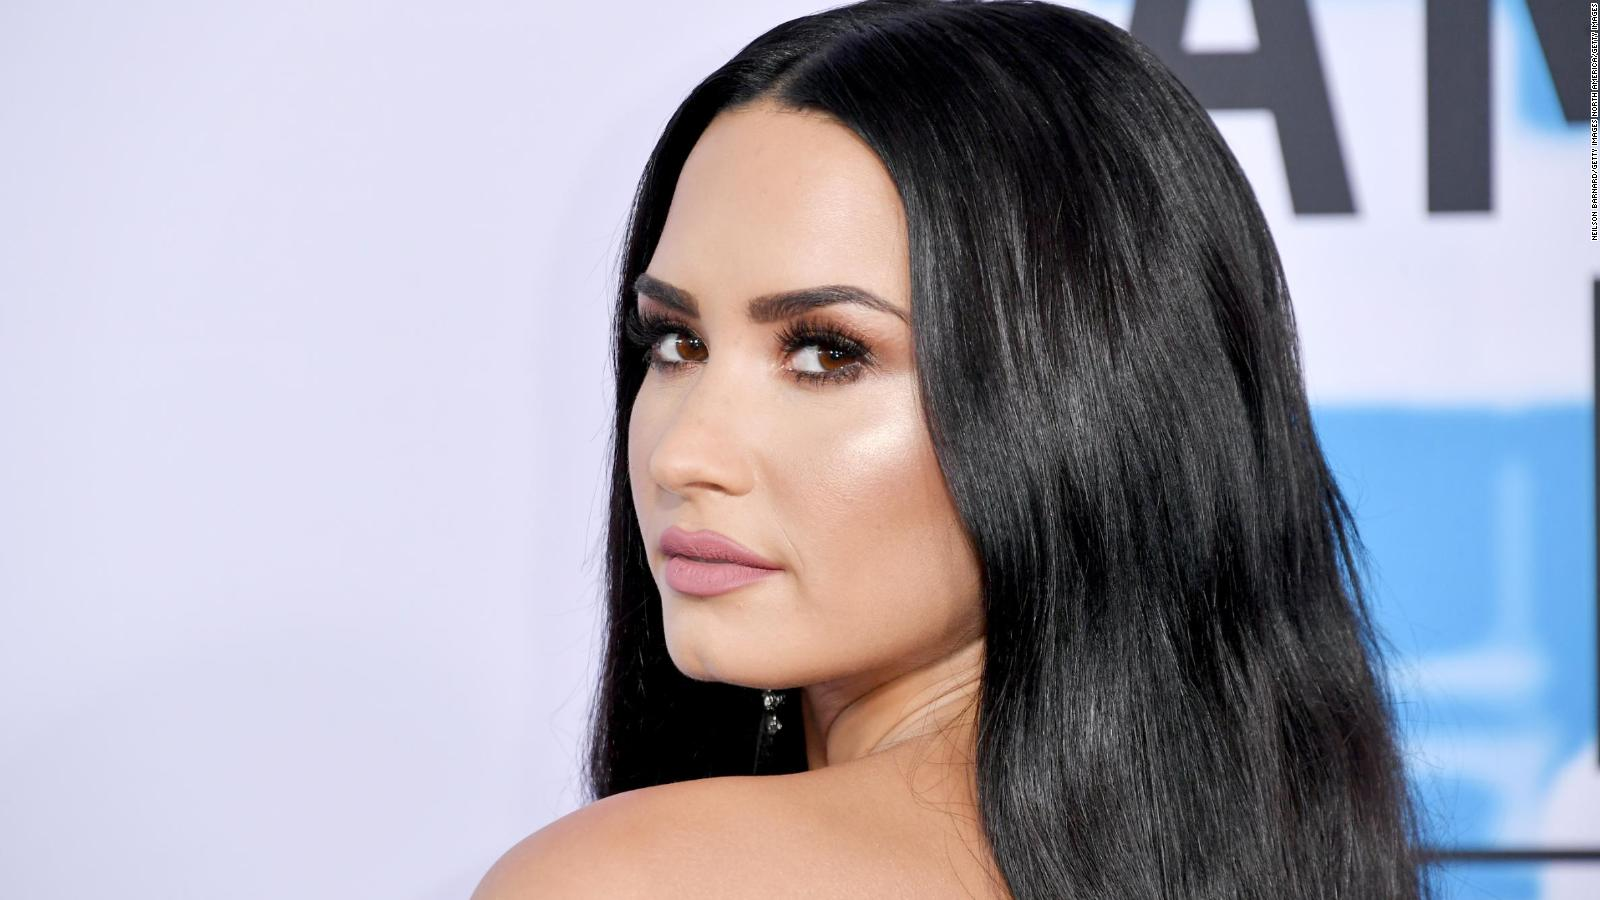 Demi Lovato Slams Fan Who Says Her Team Only Cares 'About Her Money': 'You Have No Idea'